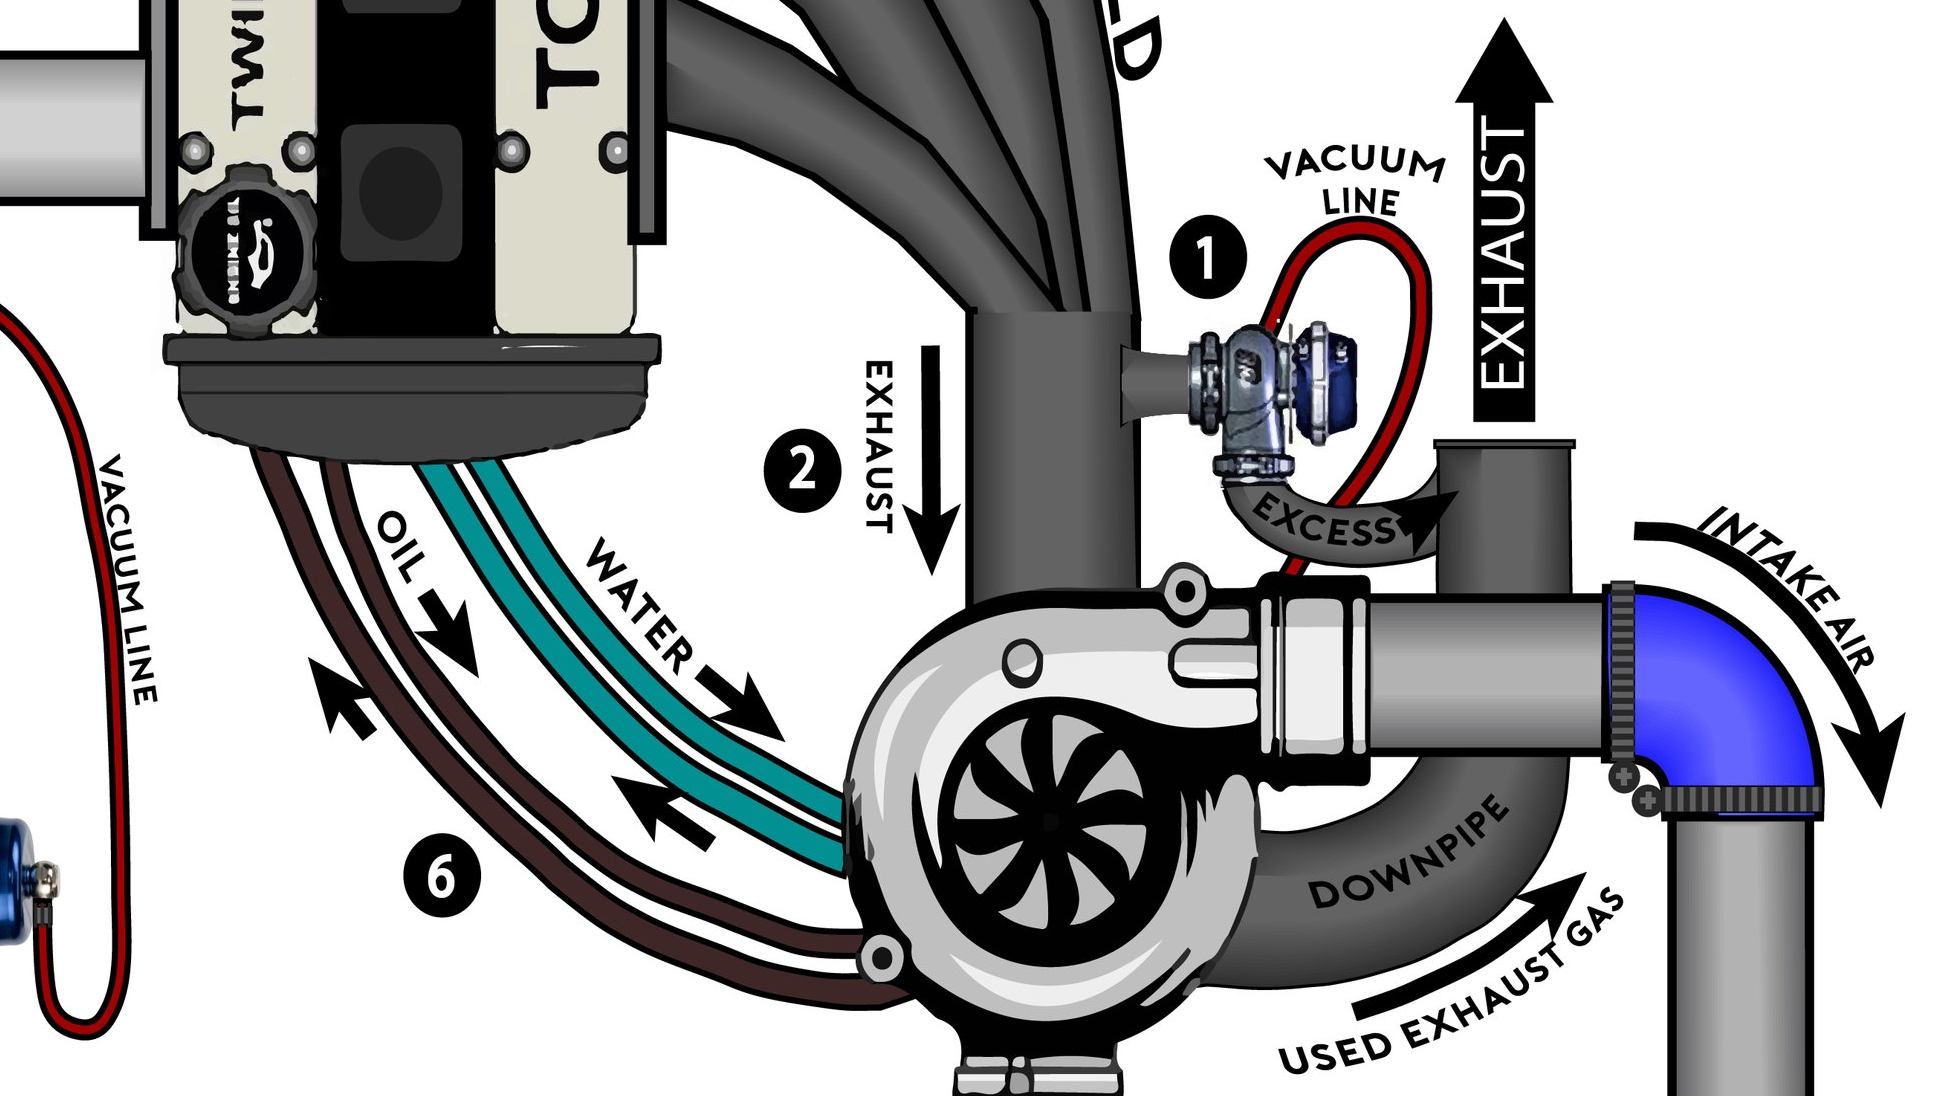 hight resolution of note there s usually an intake pipe with a filter attached to the front of the turbocharger though it s been left out of this diagram